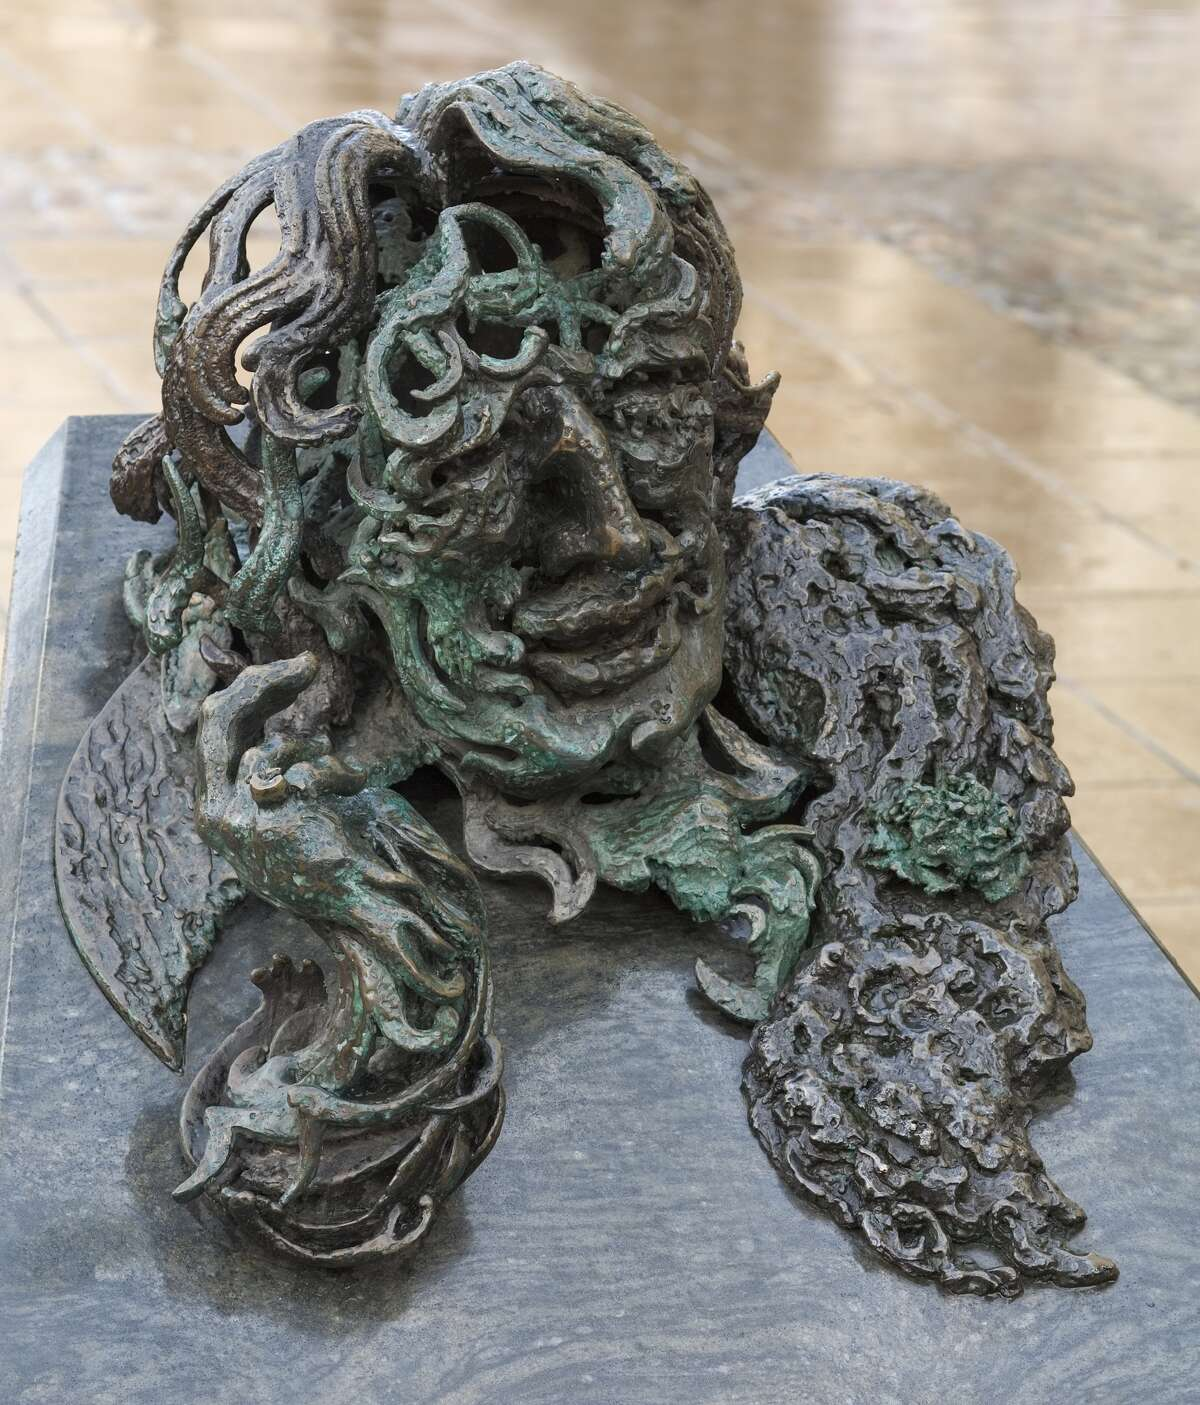 The Statues Of London,United Kingdom, Architect London, The Statues Of London Book Oscar Wilde By Maggi Hambling (Born 1945) Material Bronze And Granite Unveiled 1998 Location Adelaid Street, Wc2.